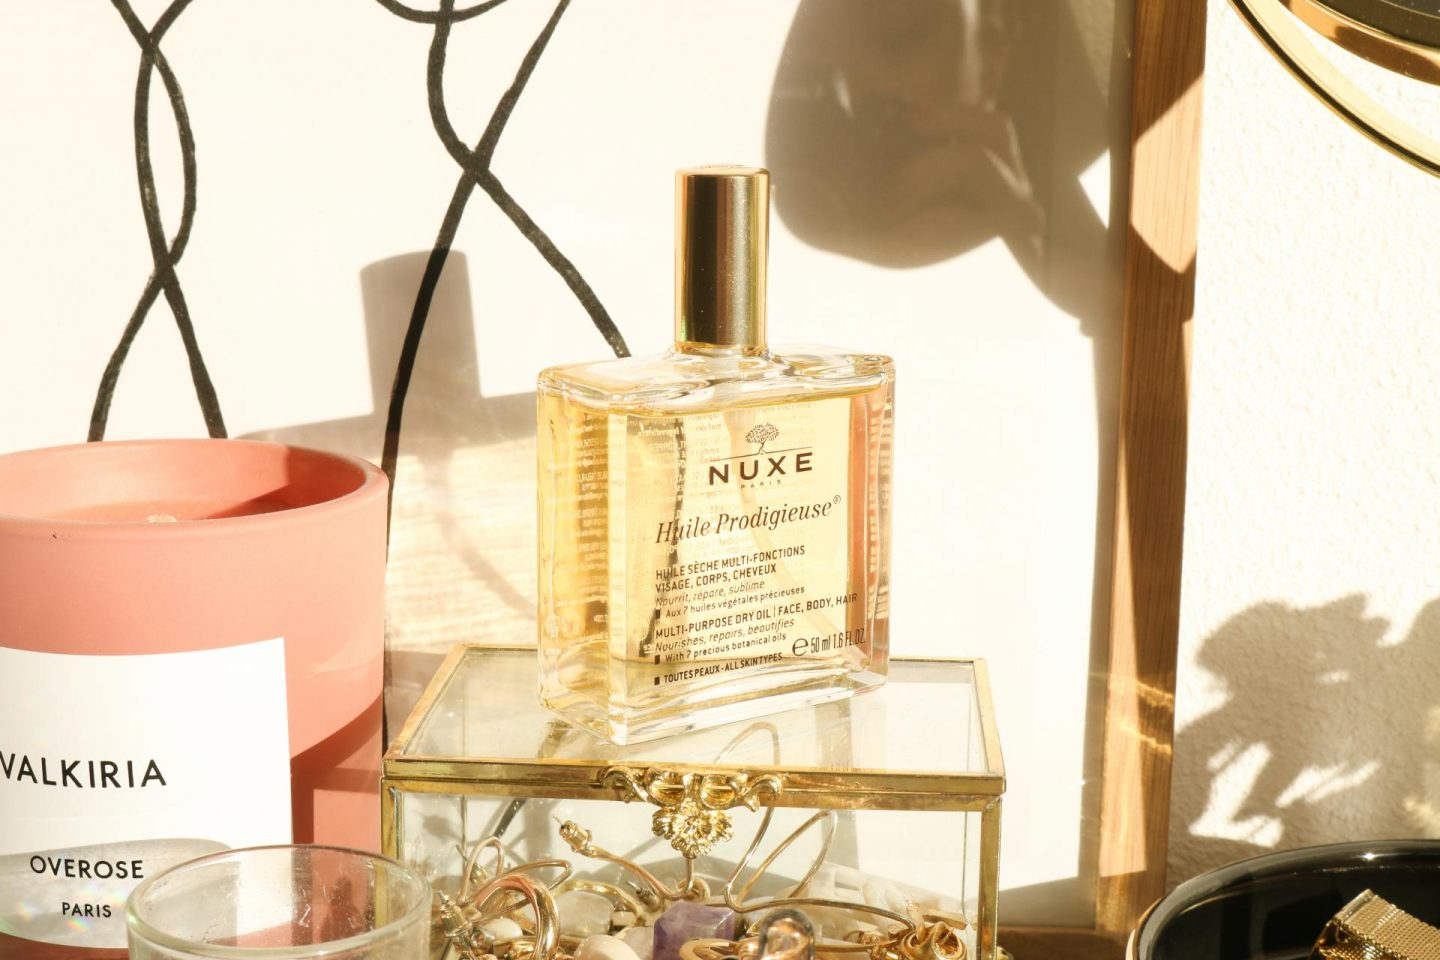 Nuxe dry oil review